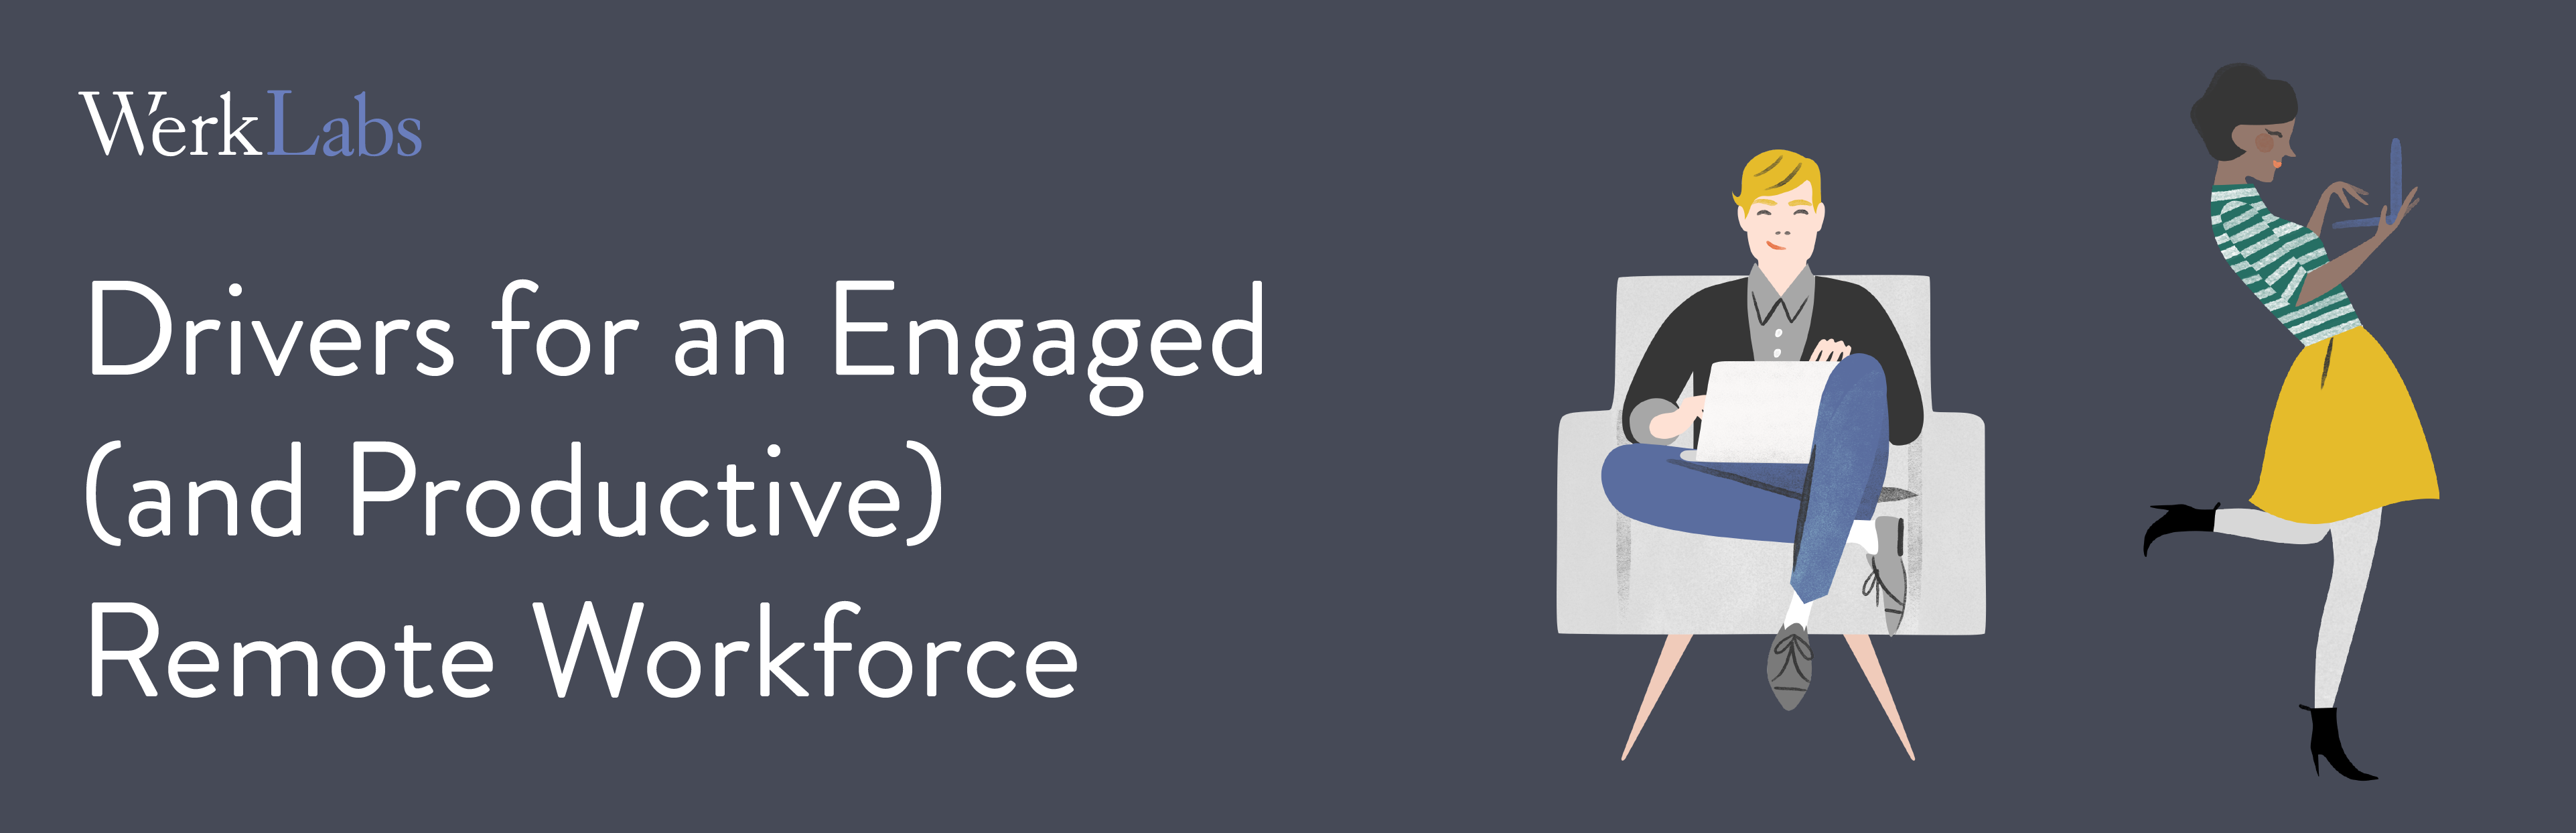 Drivers for an Engaged (and Productive) Remote Workforce